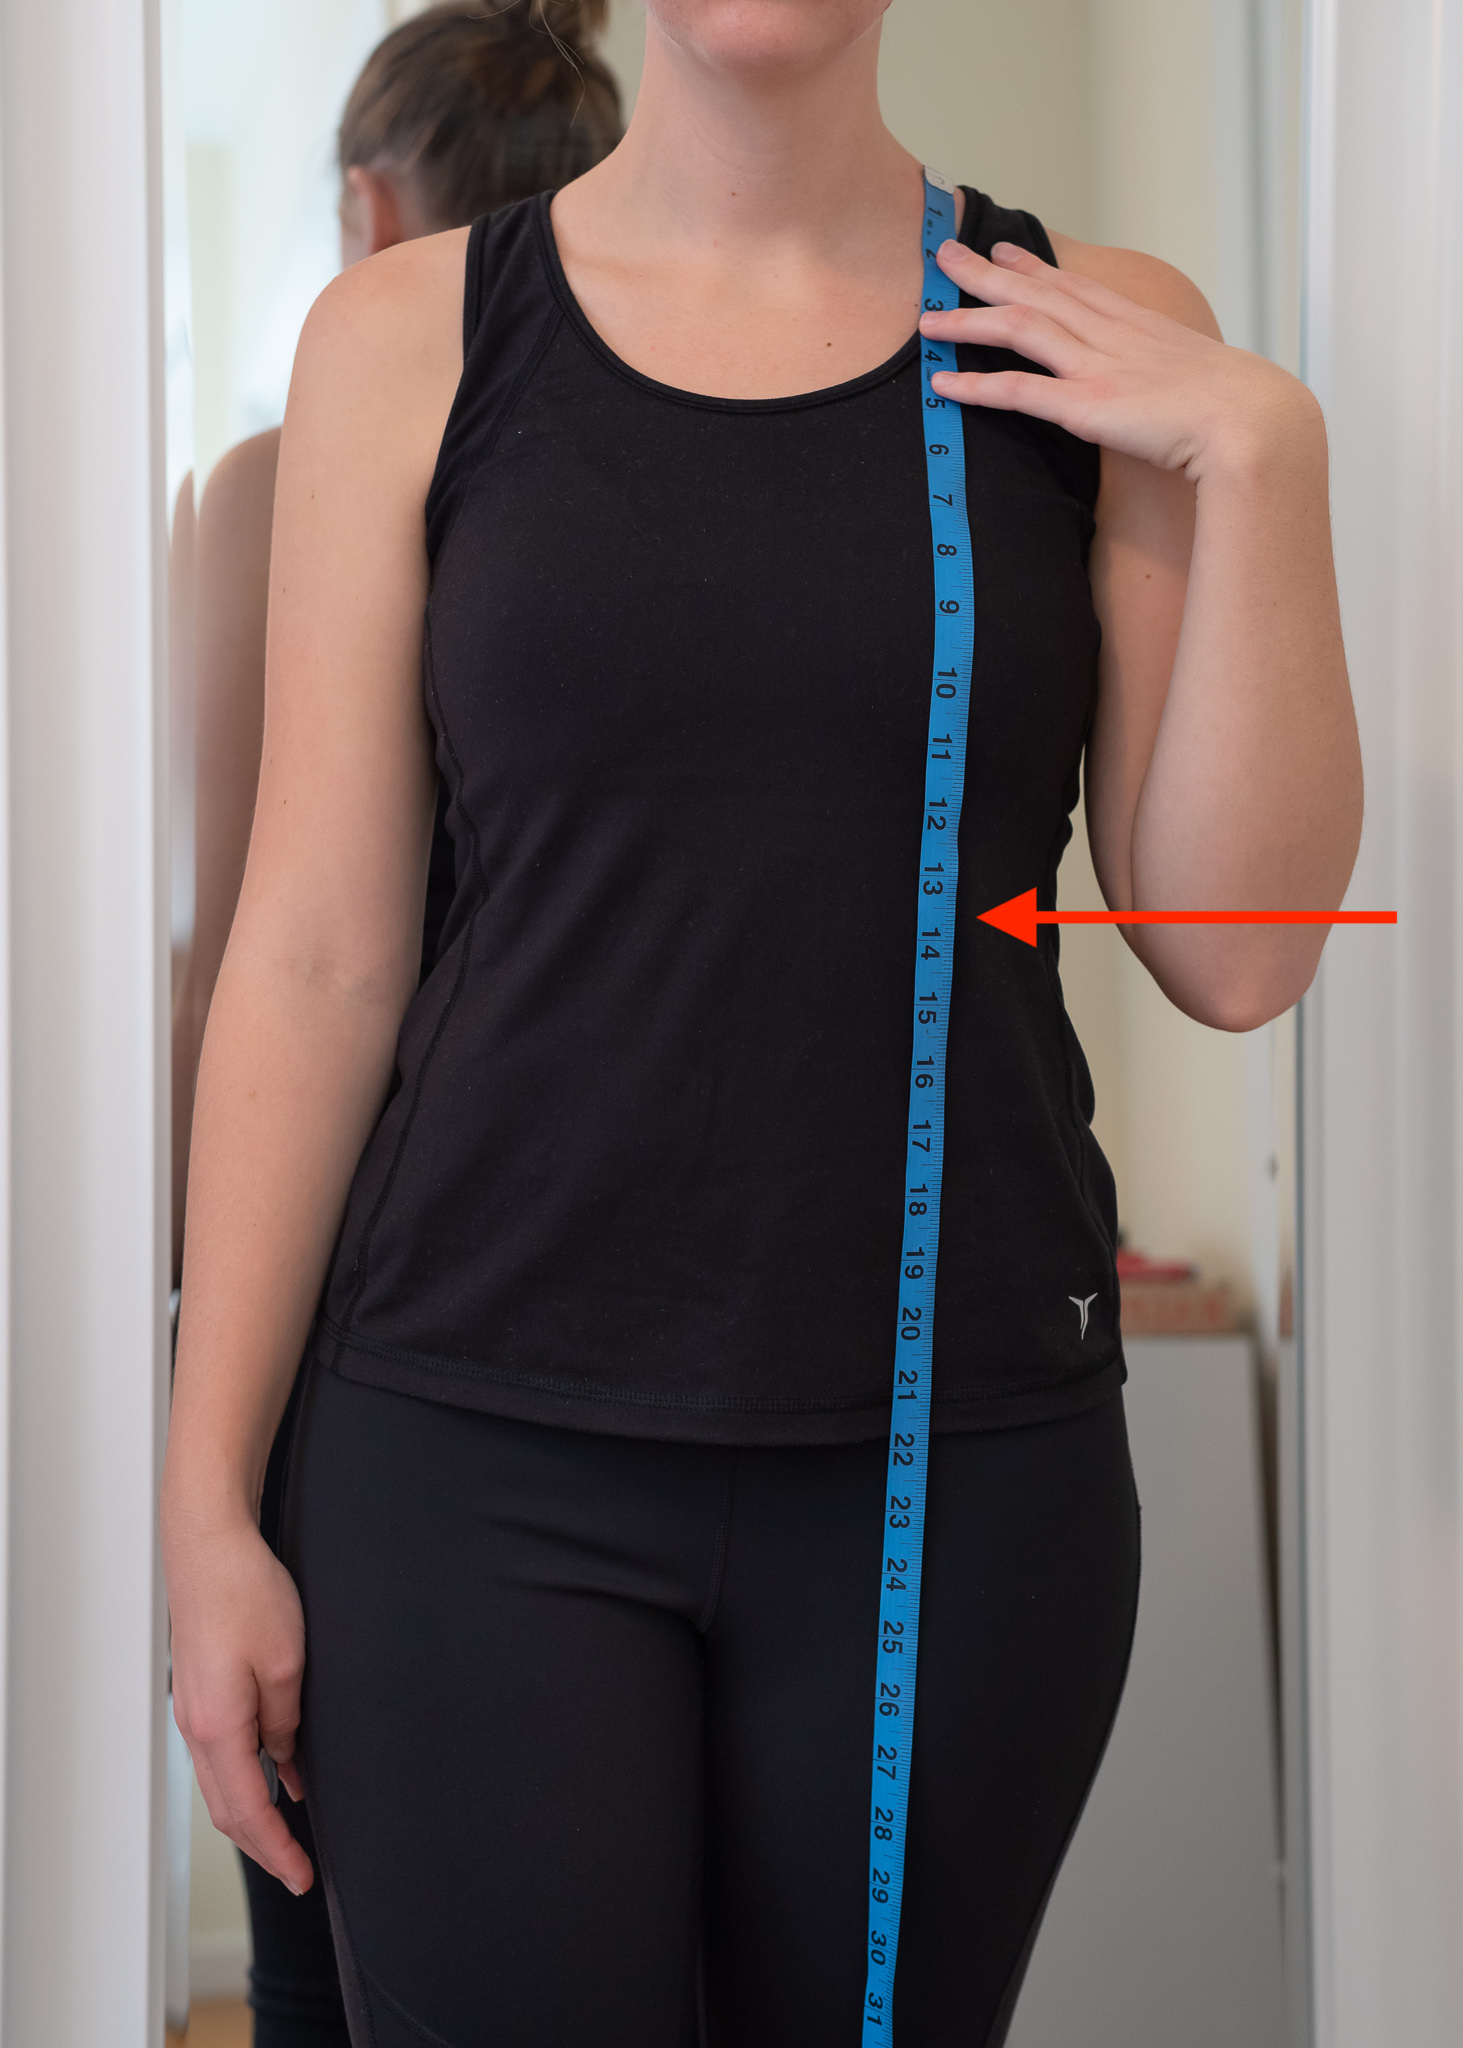 How to take your High Point of Shoulder to Waist Measurement